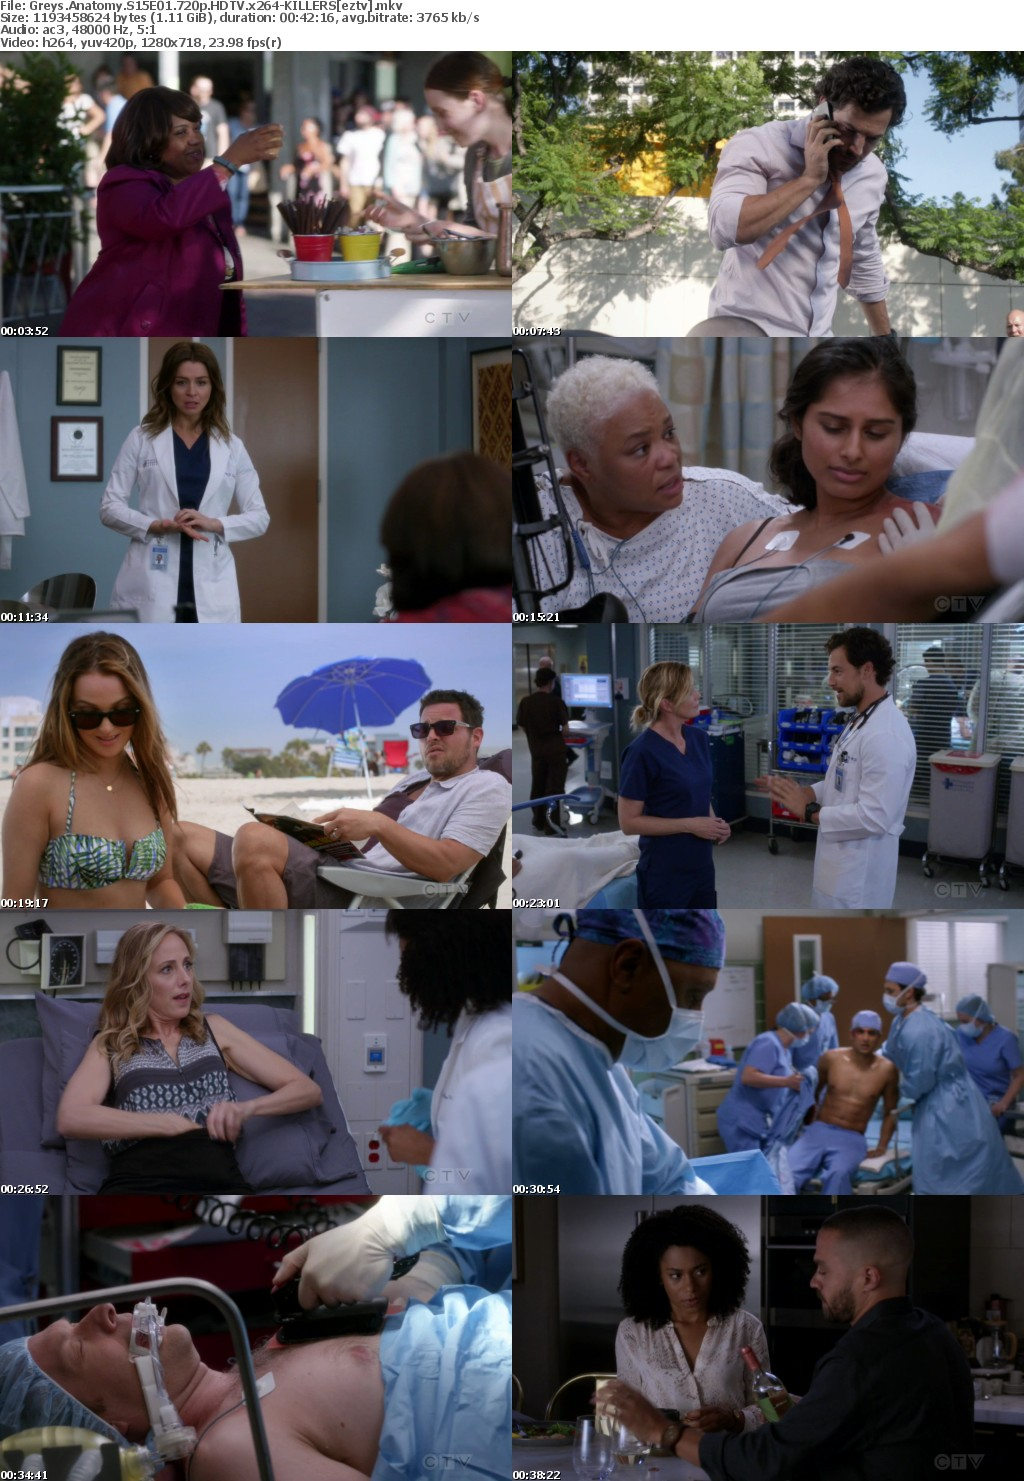 Greys Anatomy S15E01 720p HDTV x264-KILLERS